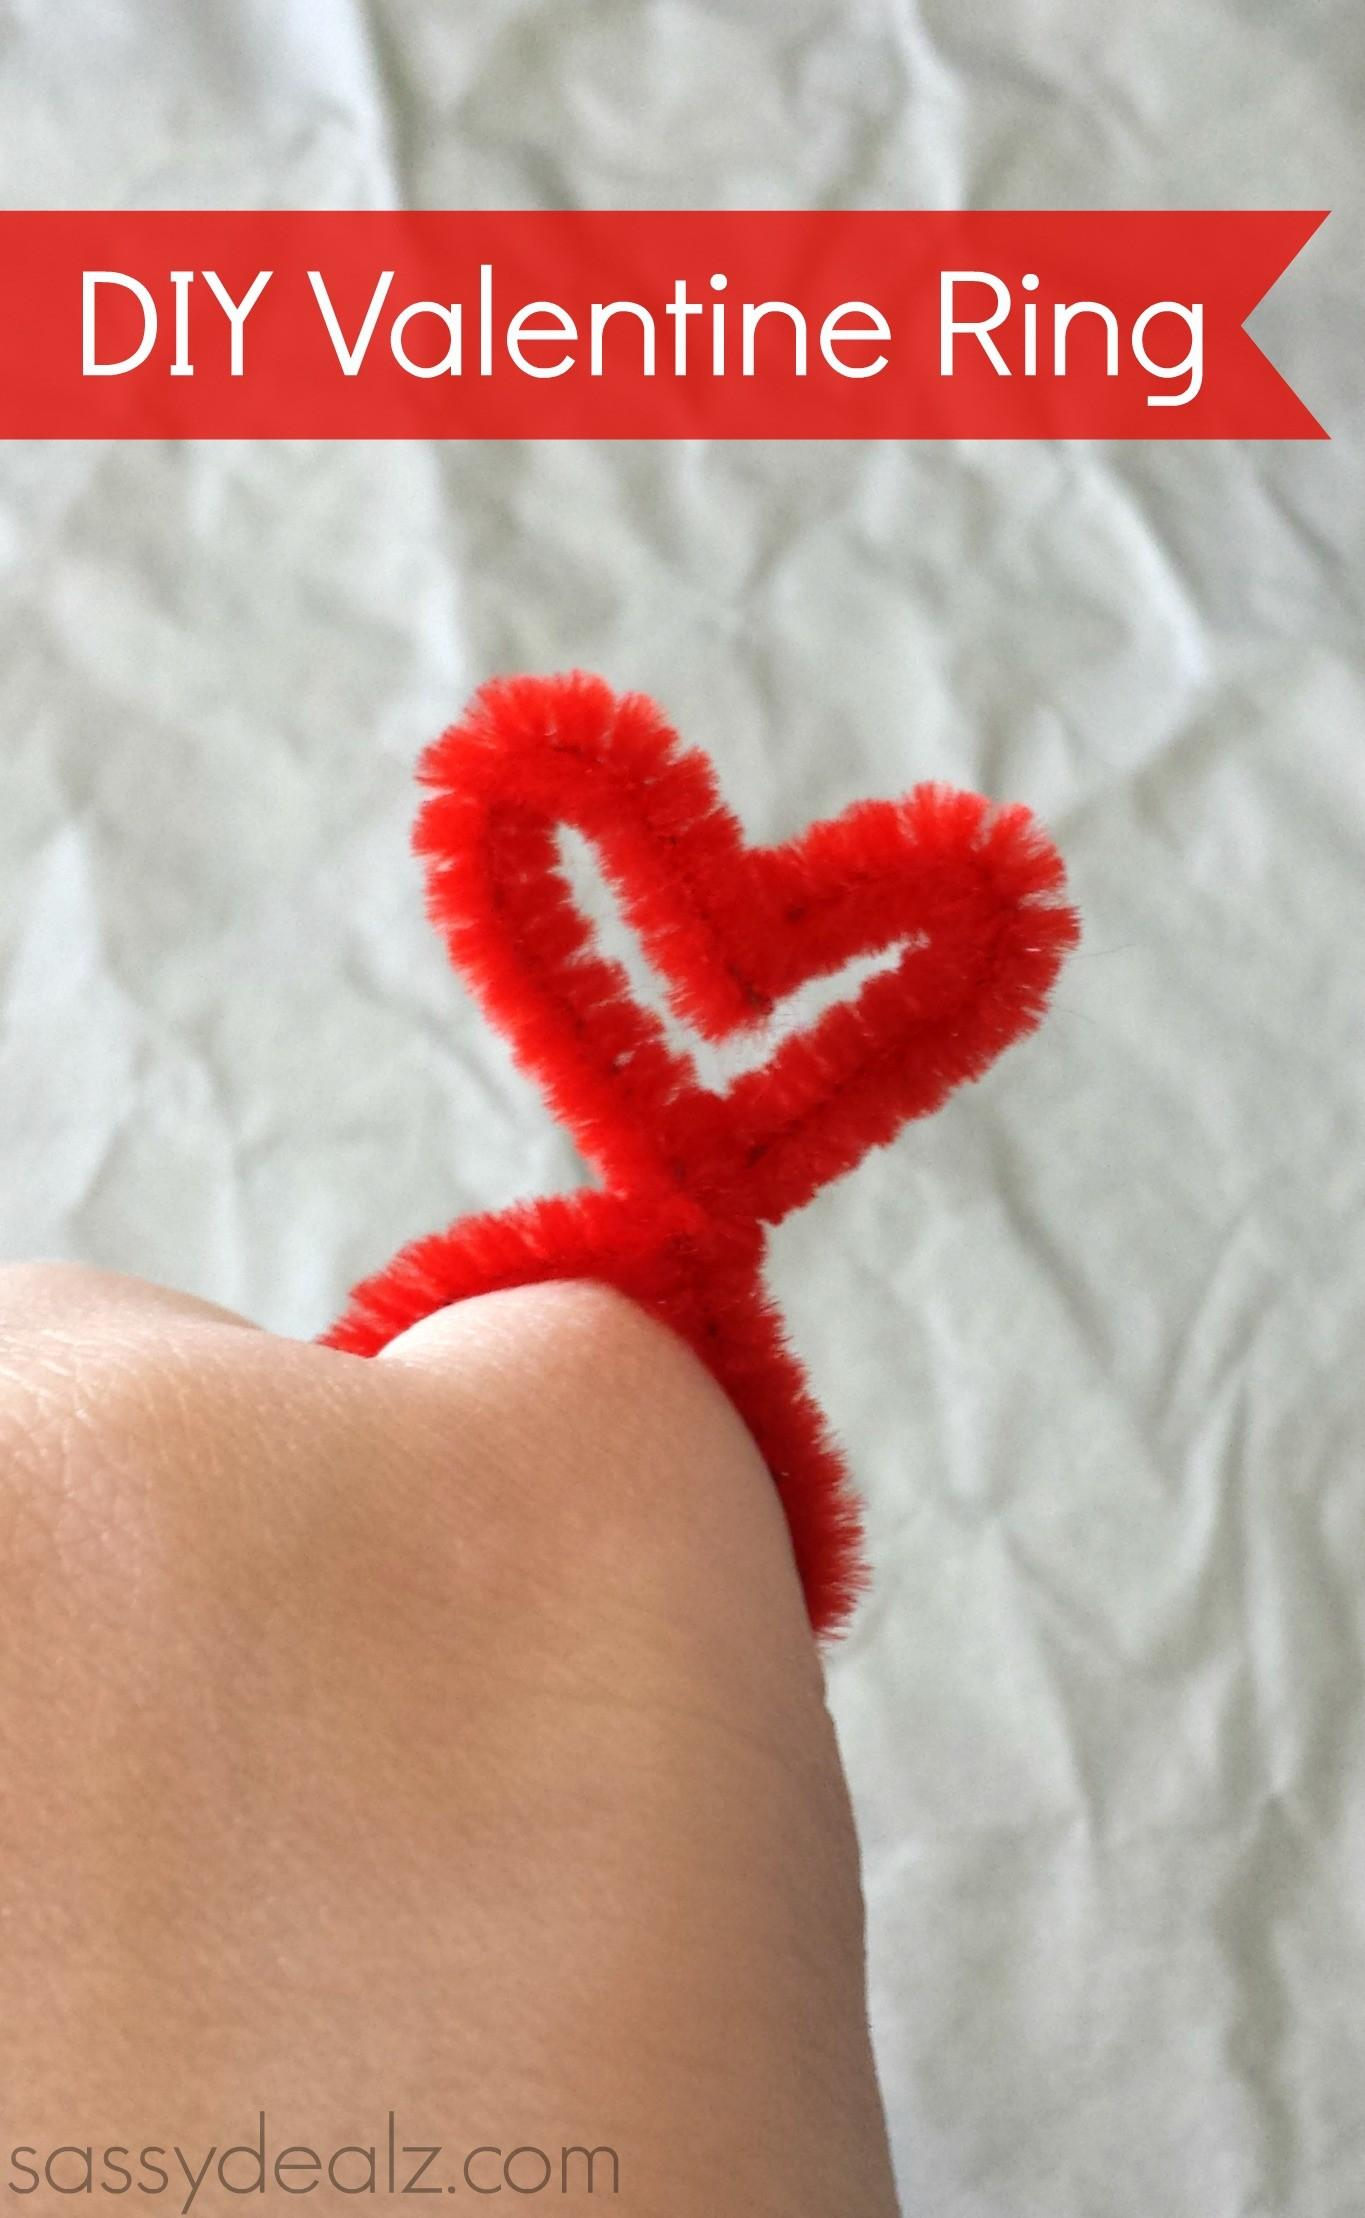 Diy Valentine Heart Rings Made Pipe Cleaners Crafty